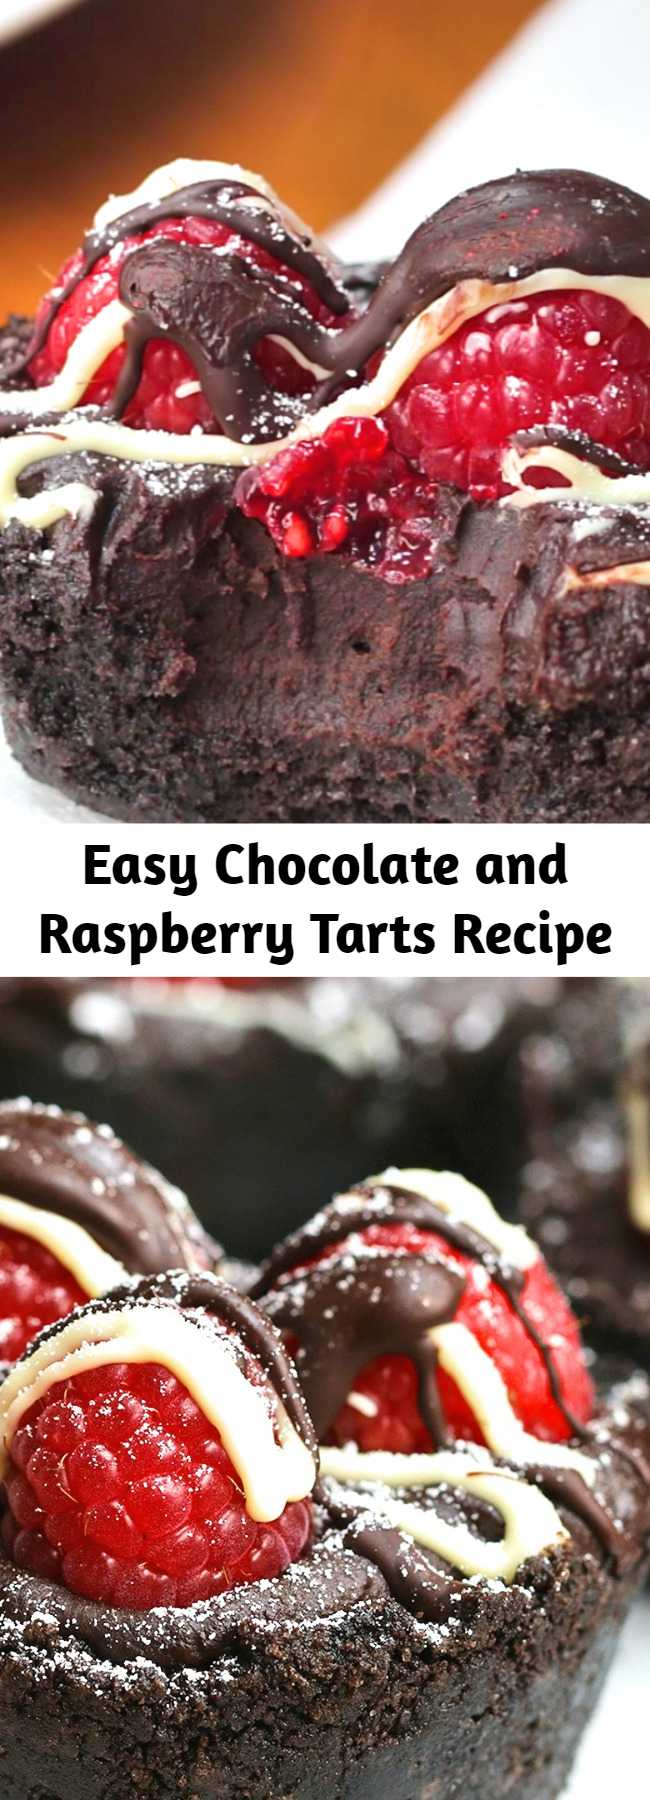 This simple, decadent tart will keep overnight in the refrigerator (top with raspberries just before serving). Try it with vanilla ice cream or whipped cream.